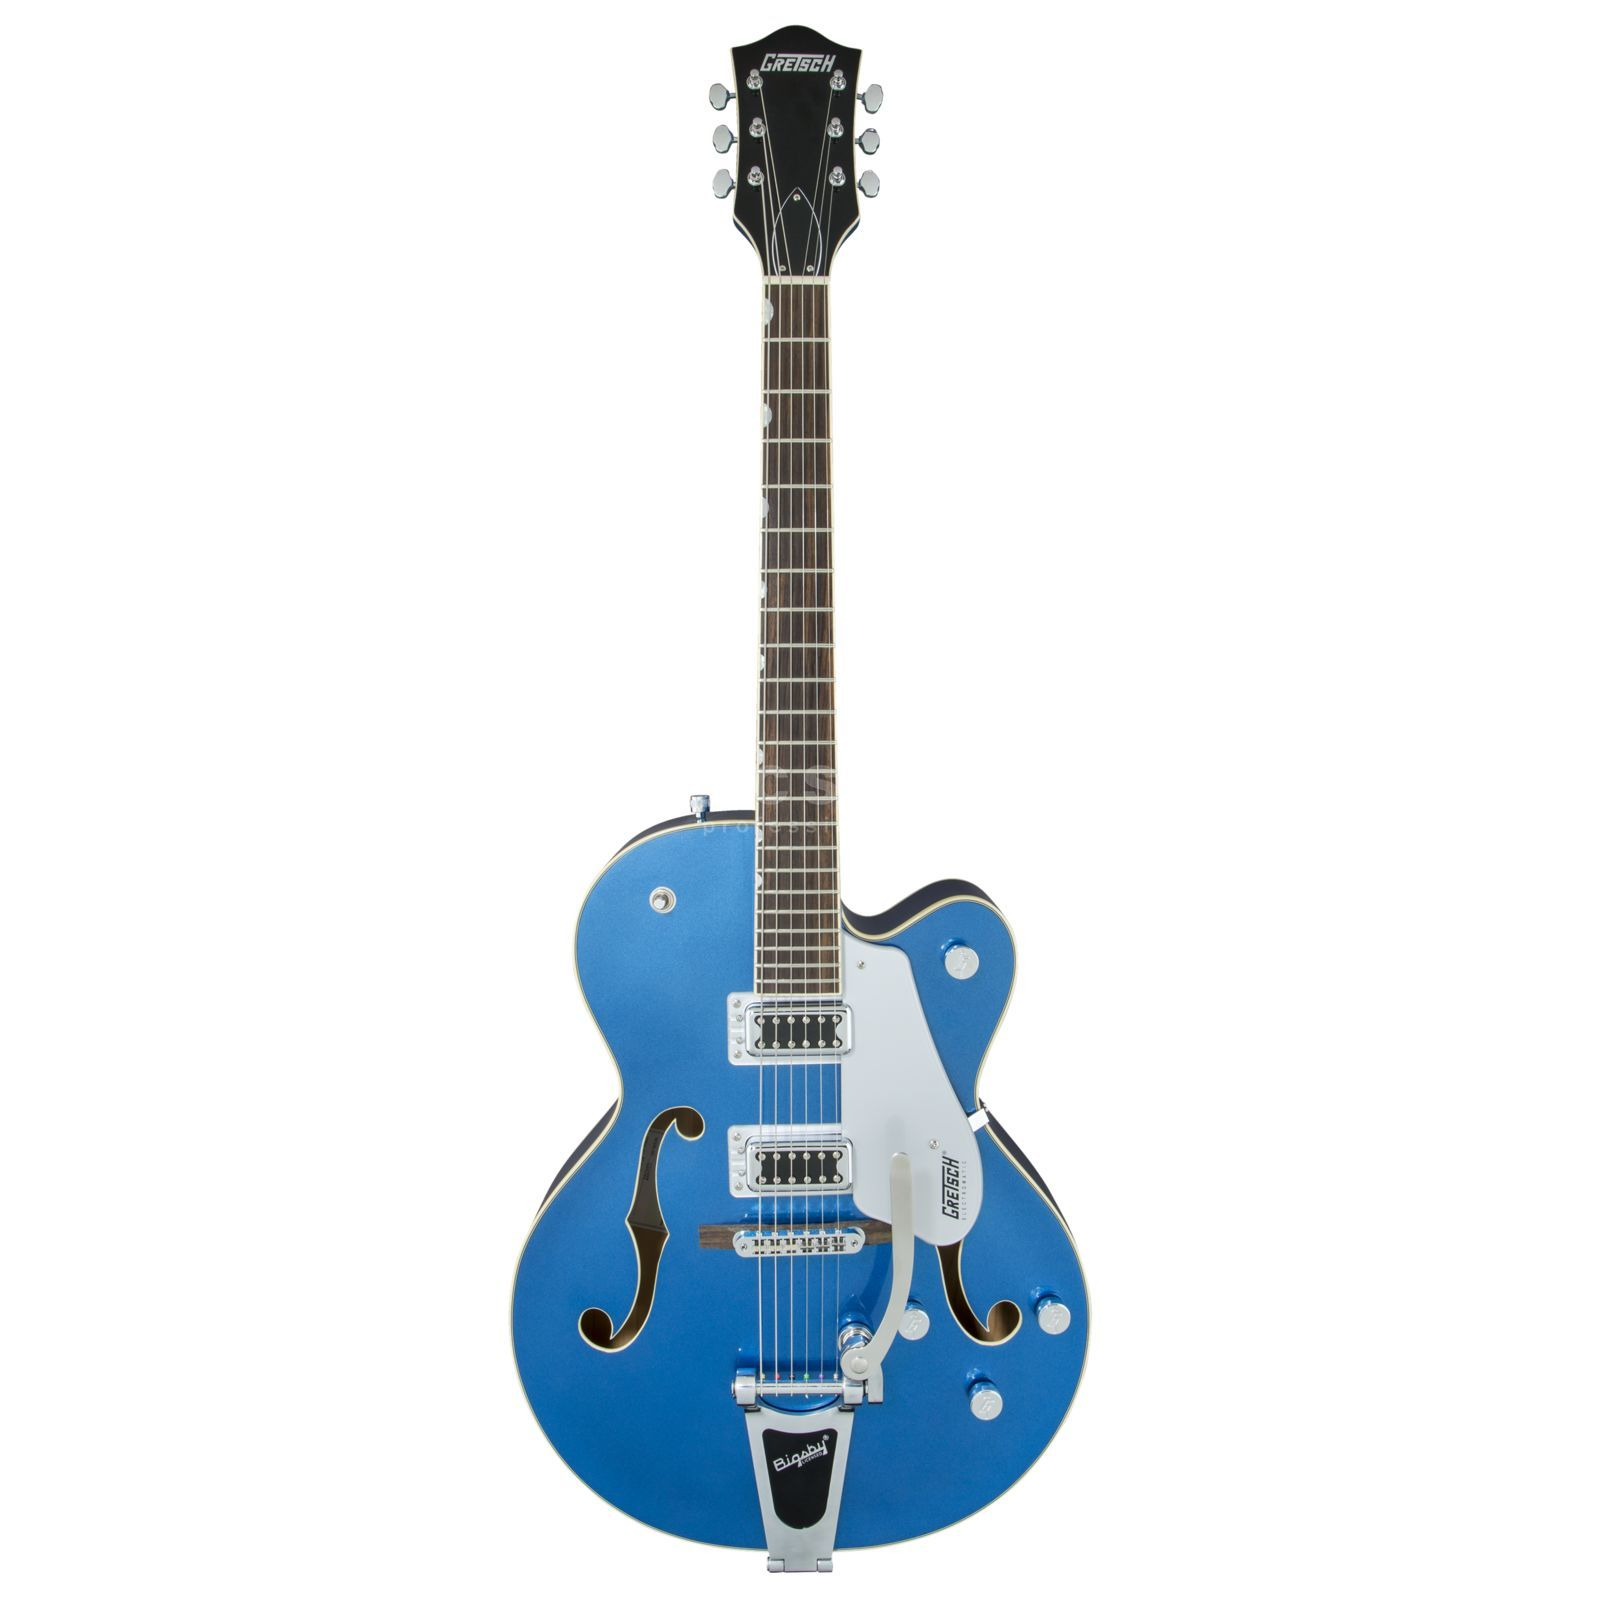 Gretsch G5420T 2016 Fairlane Blue Изображение товара